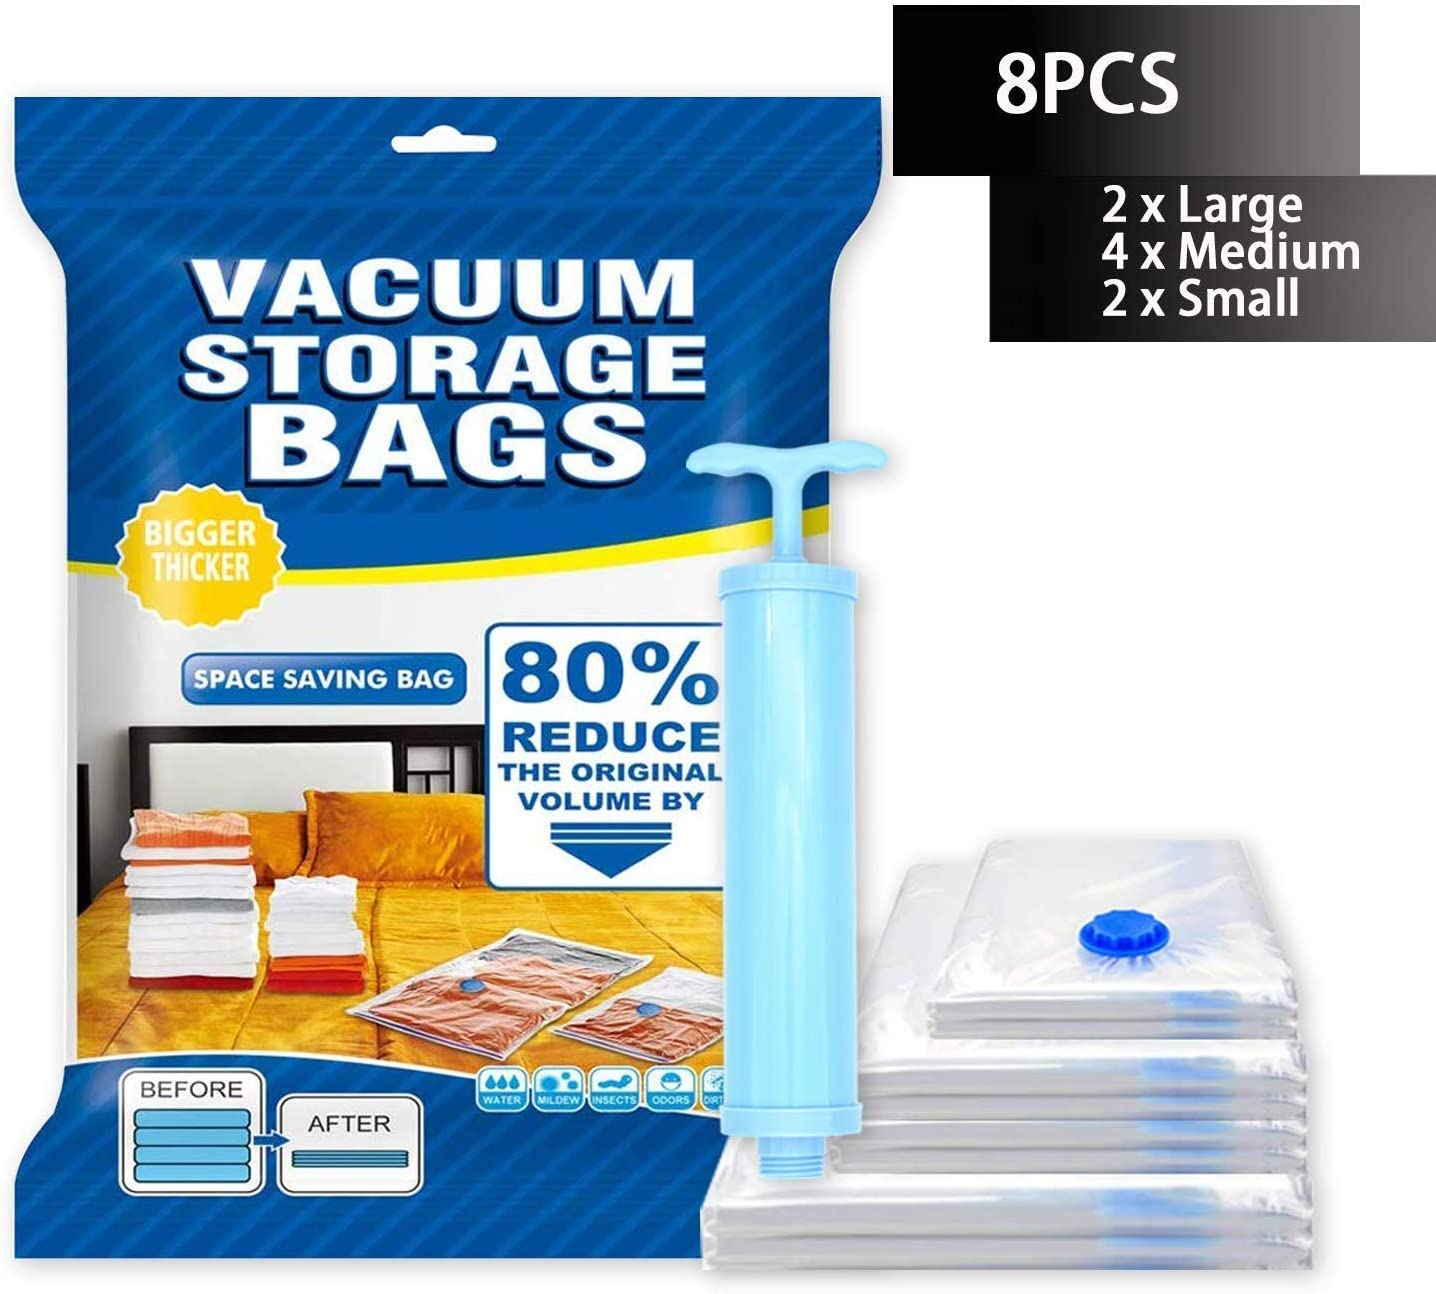 BZ Vacuum Storage Bags 8 Pack 80% More Vacuum Seal Bags for Clothes, Comforters, Pillows - Travel Hand Pump Included Women's Day Gift